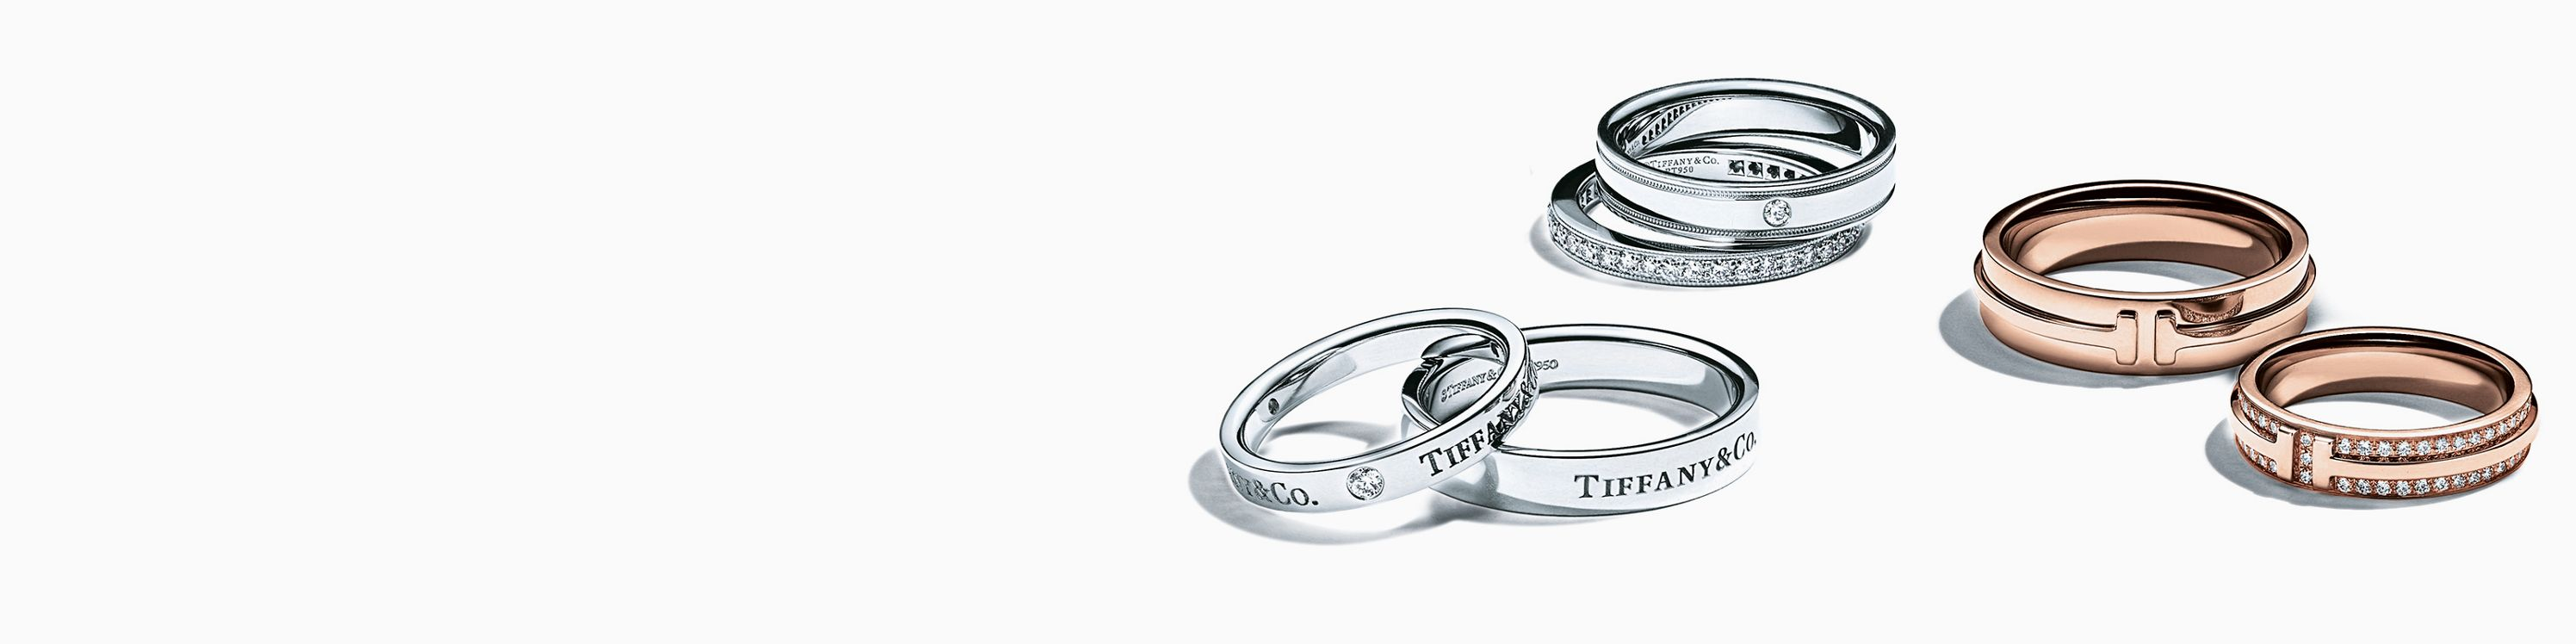 0e8583d89 Shop Tiffany & Co. Wedding Band Sets